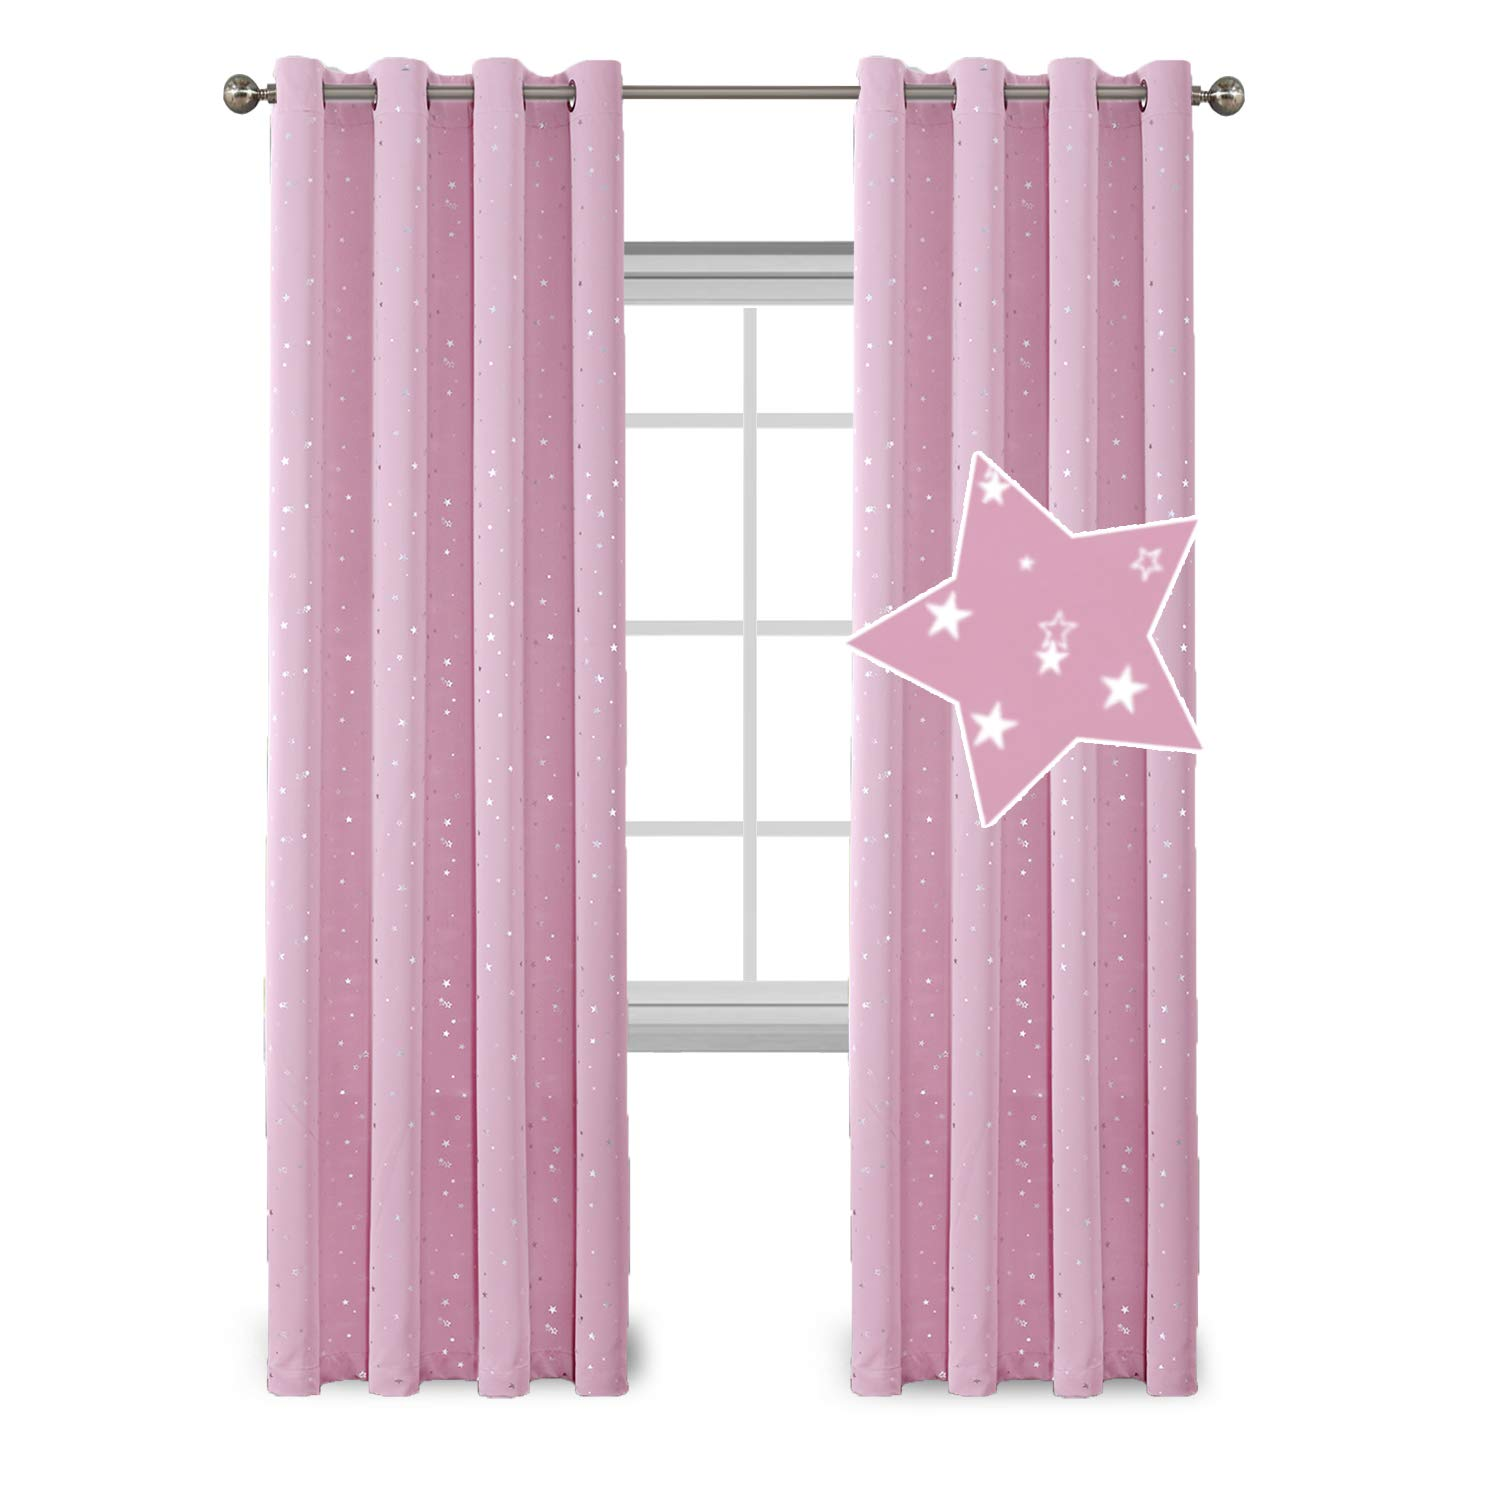 Flamingo P Light Blocking Curtains for Girls Room, Printed Pair(2 Panels) Room Darkening Thermal Insulated Grommet Top Blackout Pink Stars Kids Curtains/Drapers 96 by 52 inch